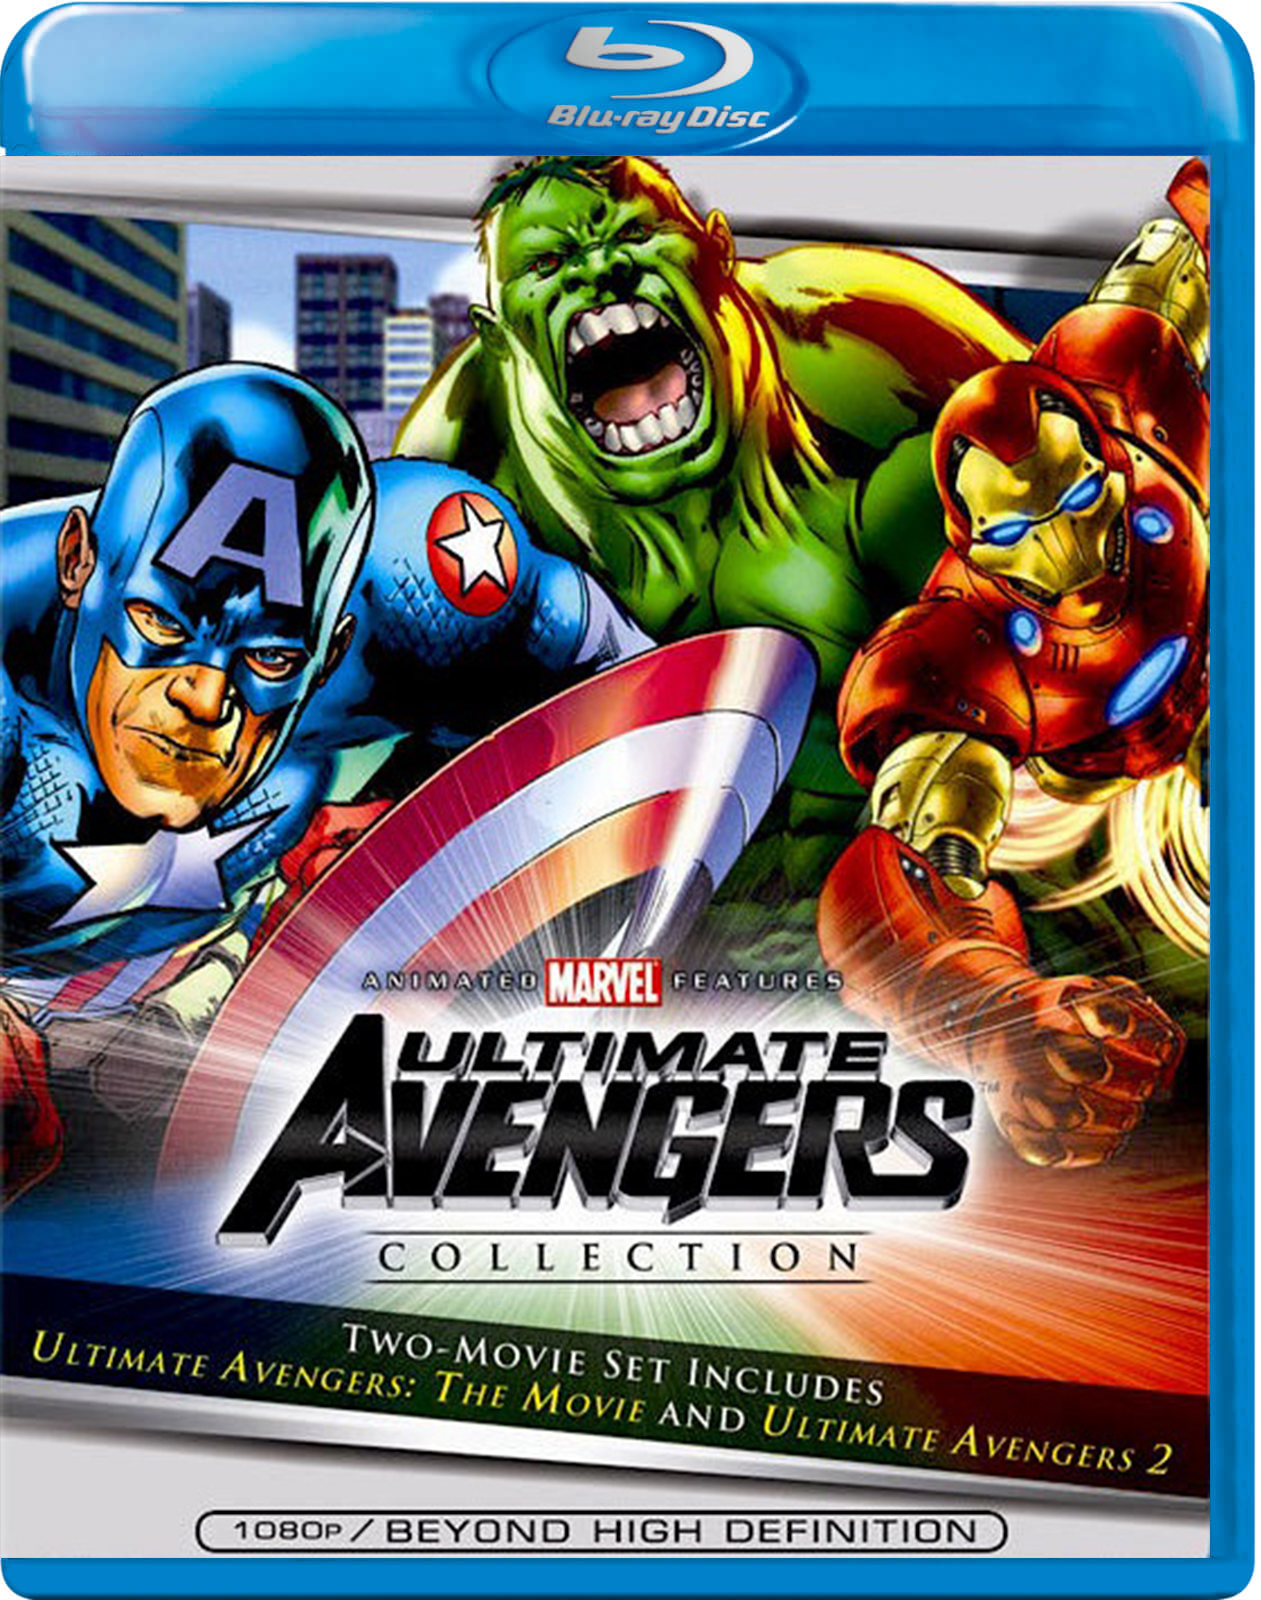 Ultimate Avengers – The Movie / Ultimate Avengers 2: Rise of the Panther [2006] [BD50] [Latino]